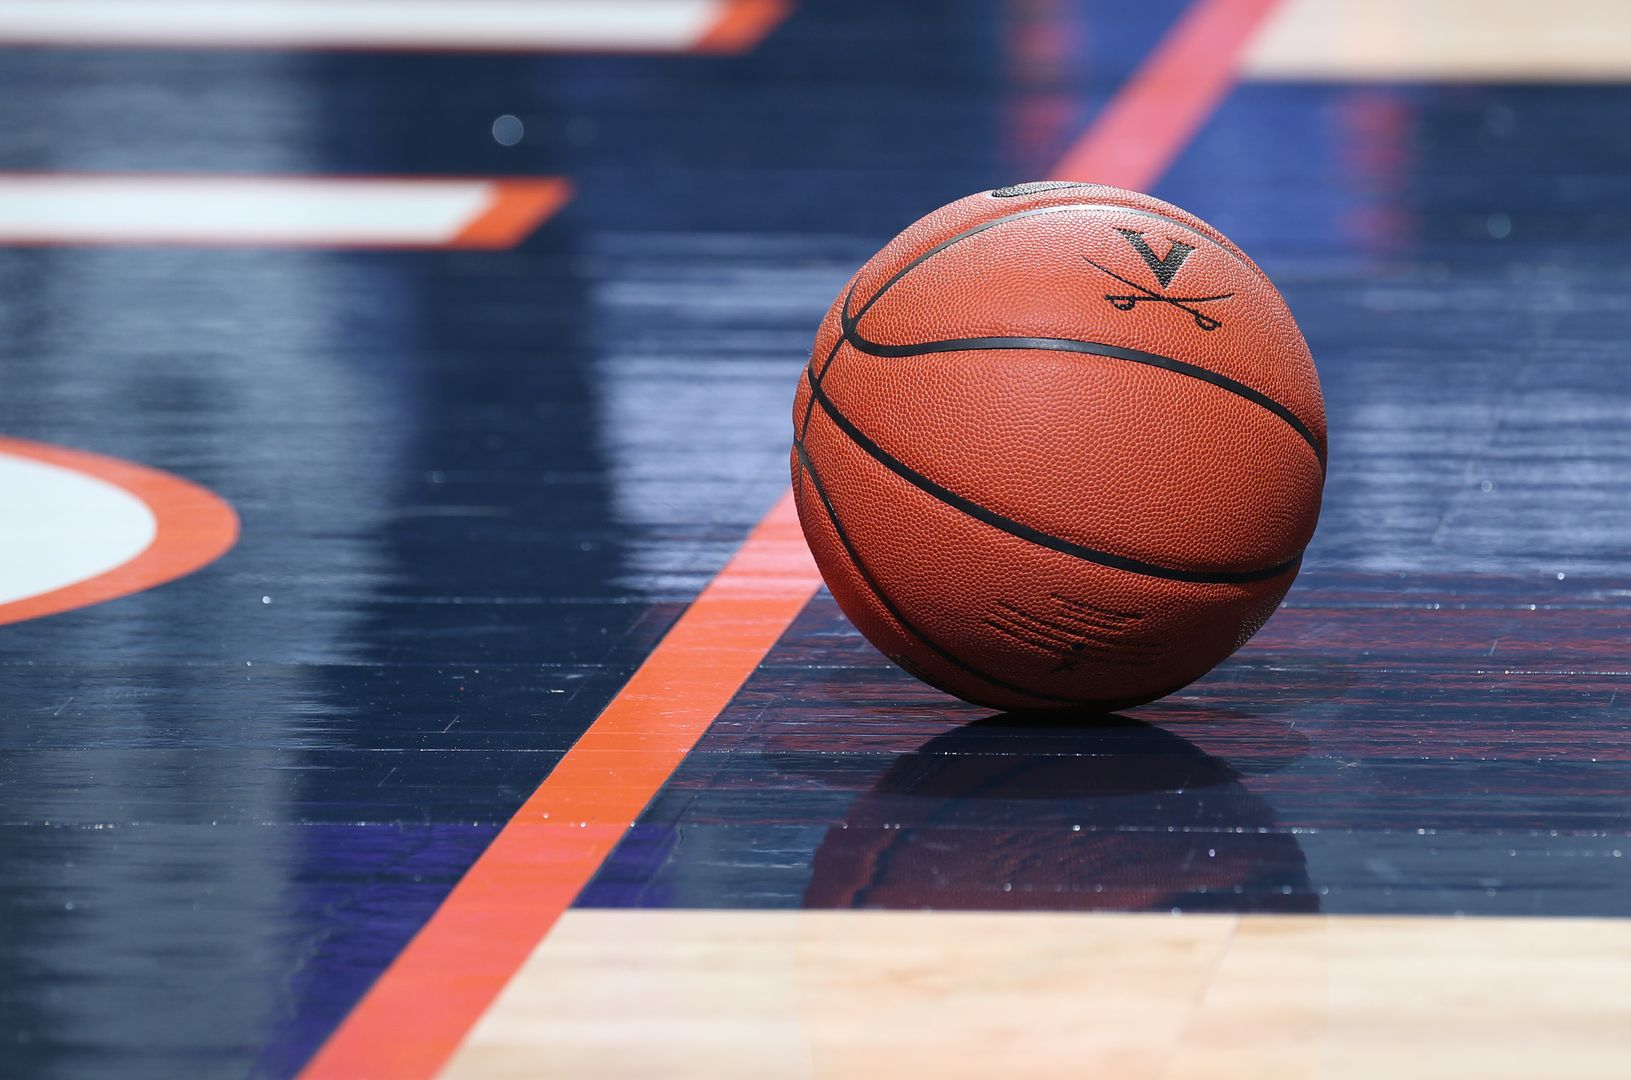 Virginia will not compete for the rest of the 2020-21 season